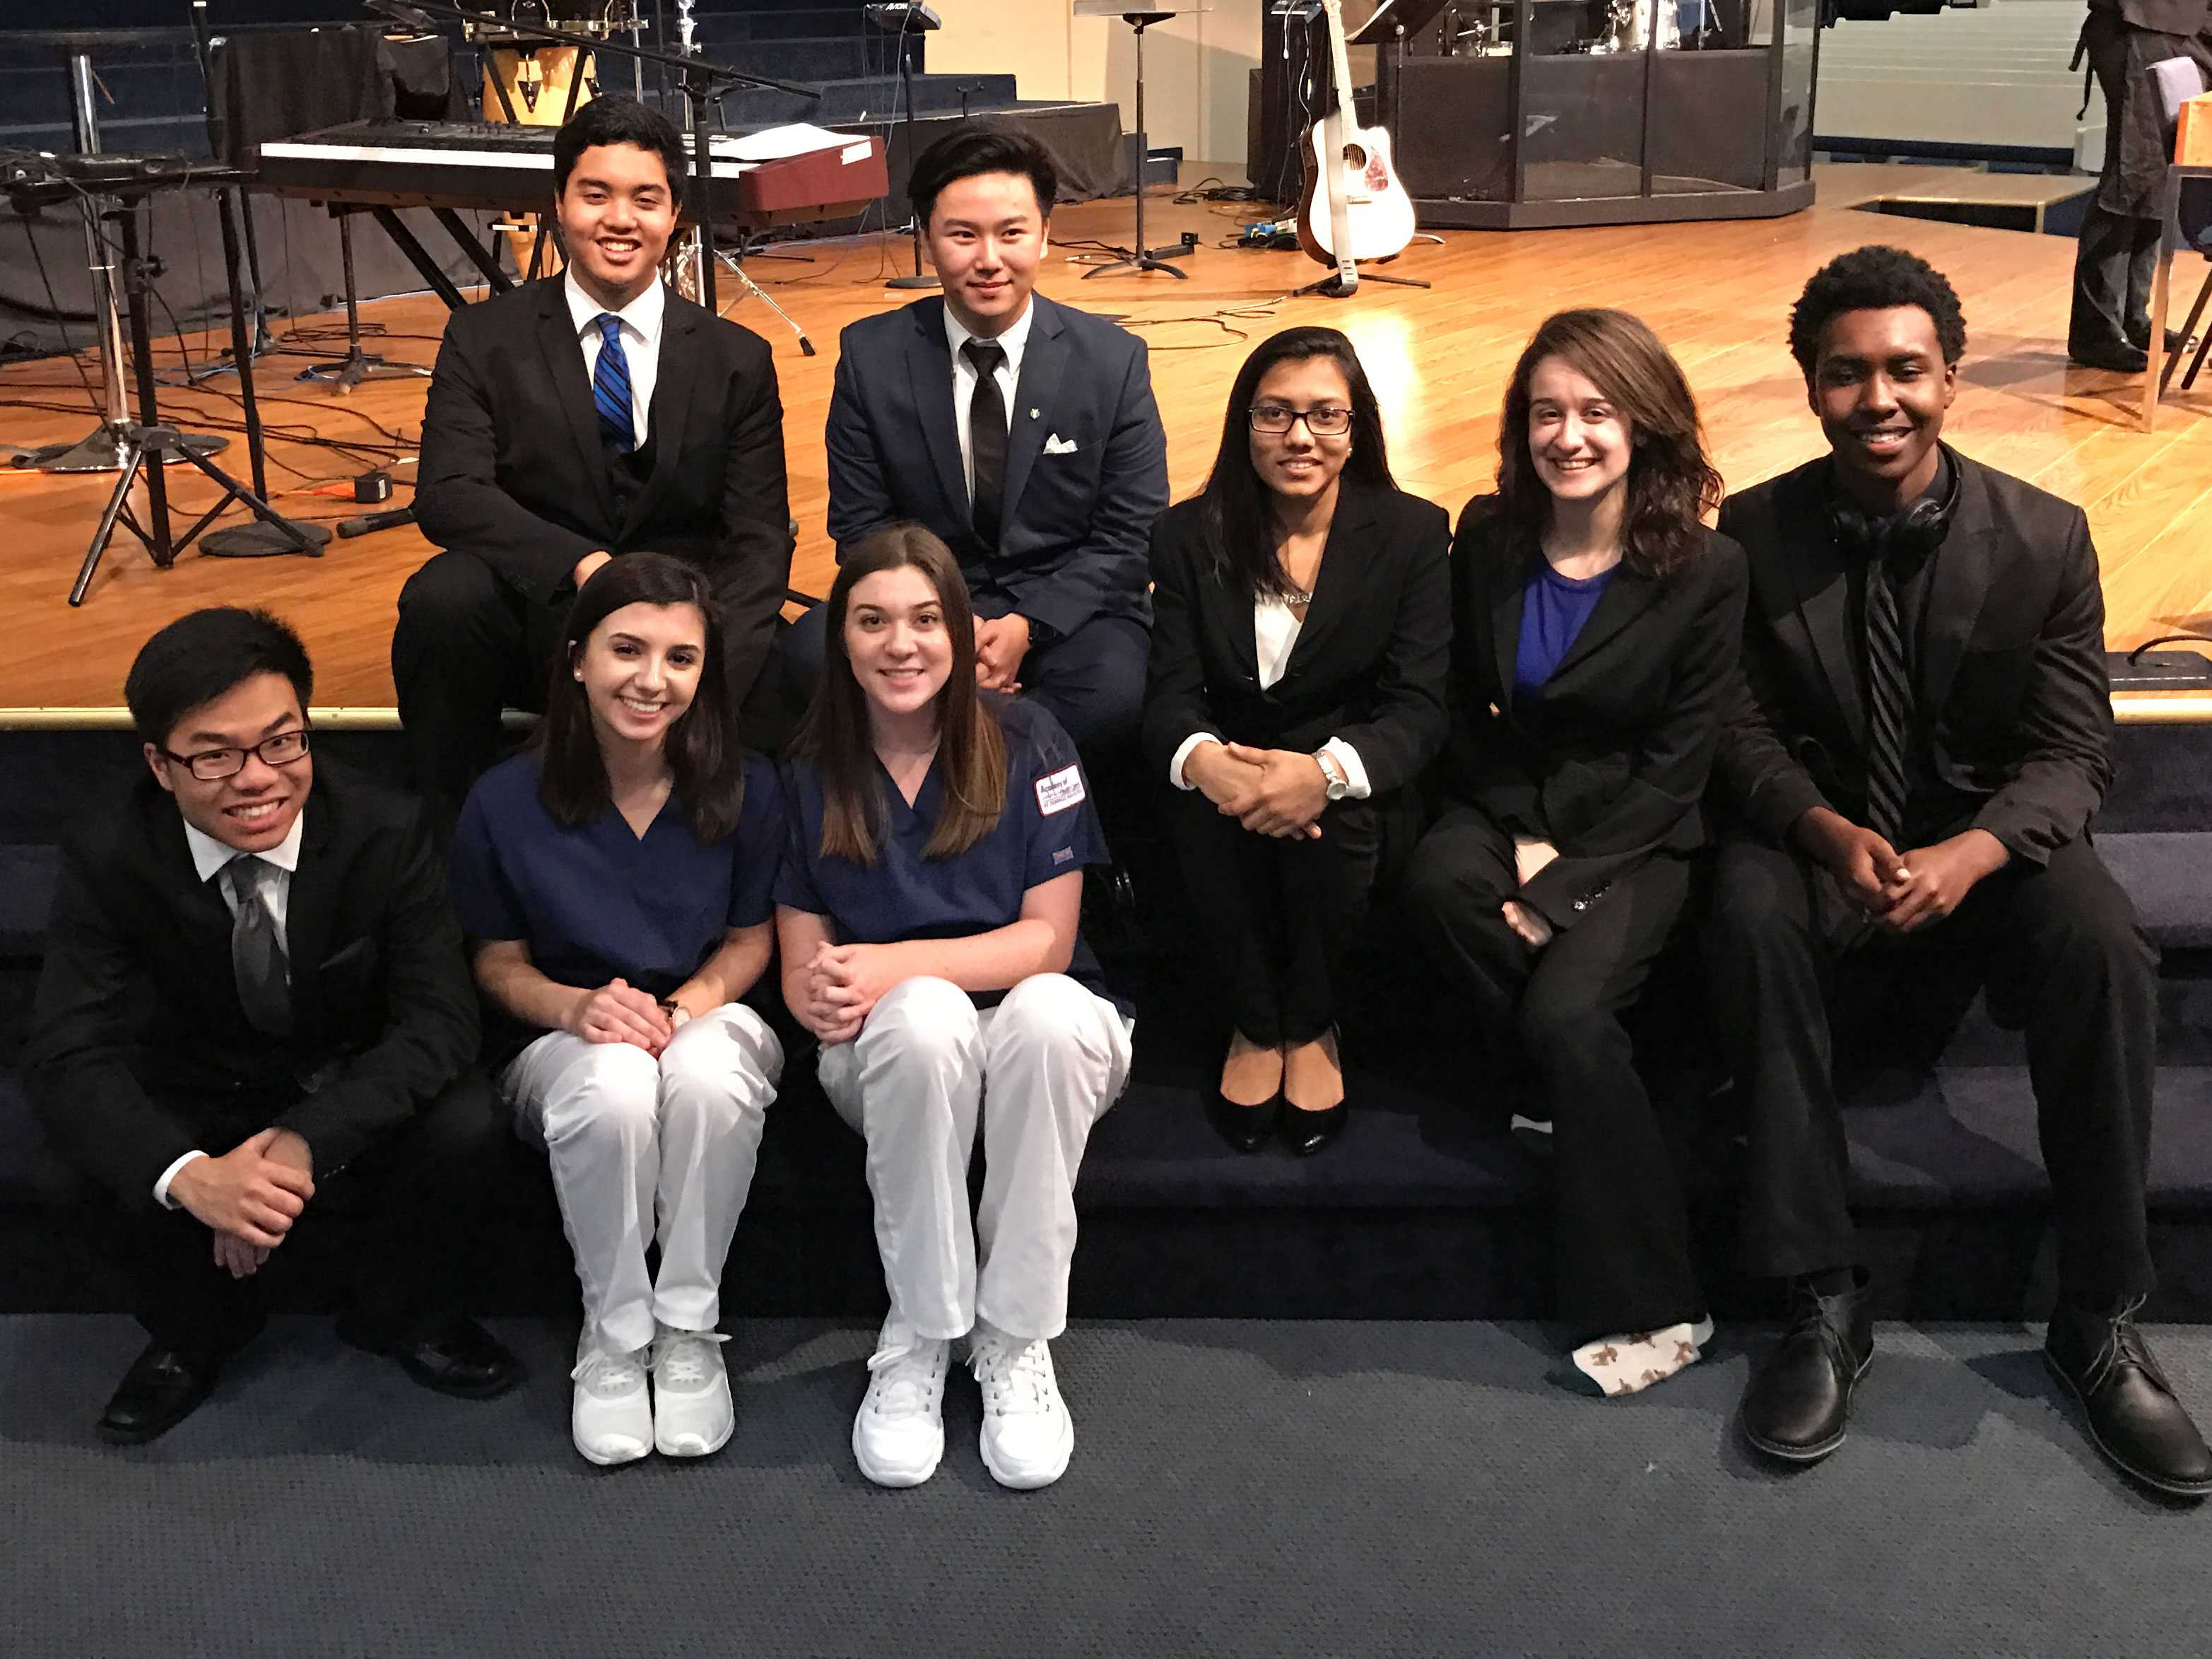 A group of HOSA competitors pose together before the closing ceremony.